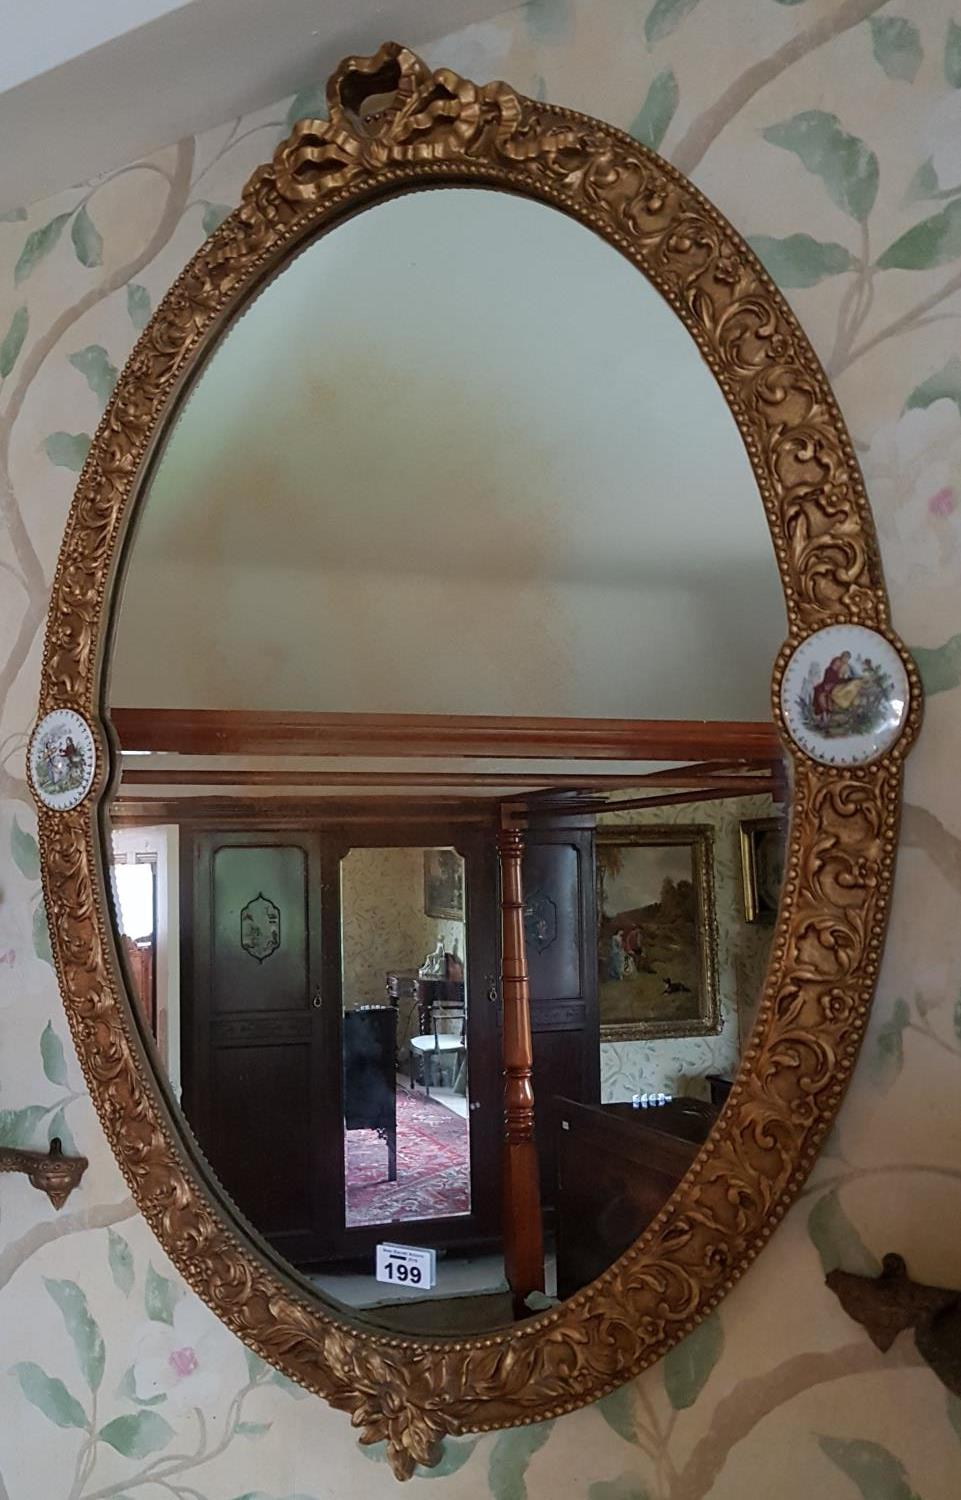 Lot 199 - A late 19th early 20th Century Oval Gilt Mirror with Sevre style plaques.